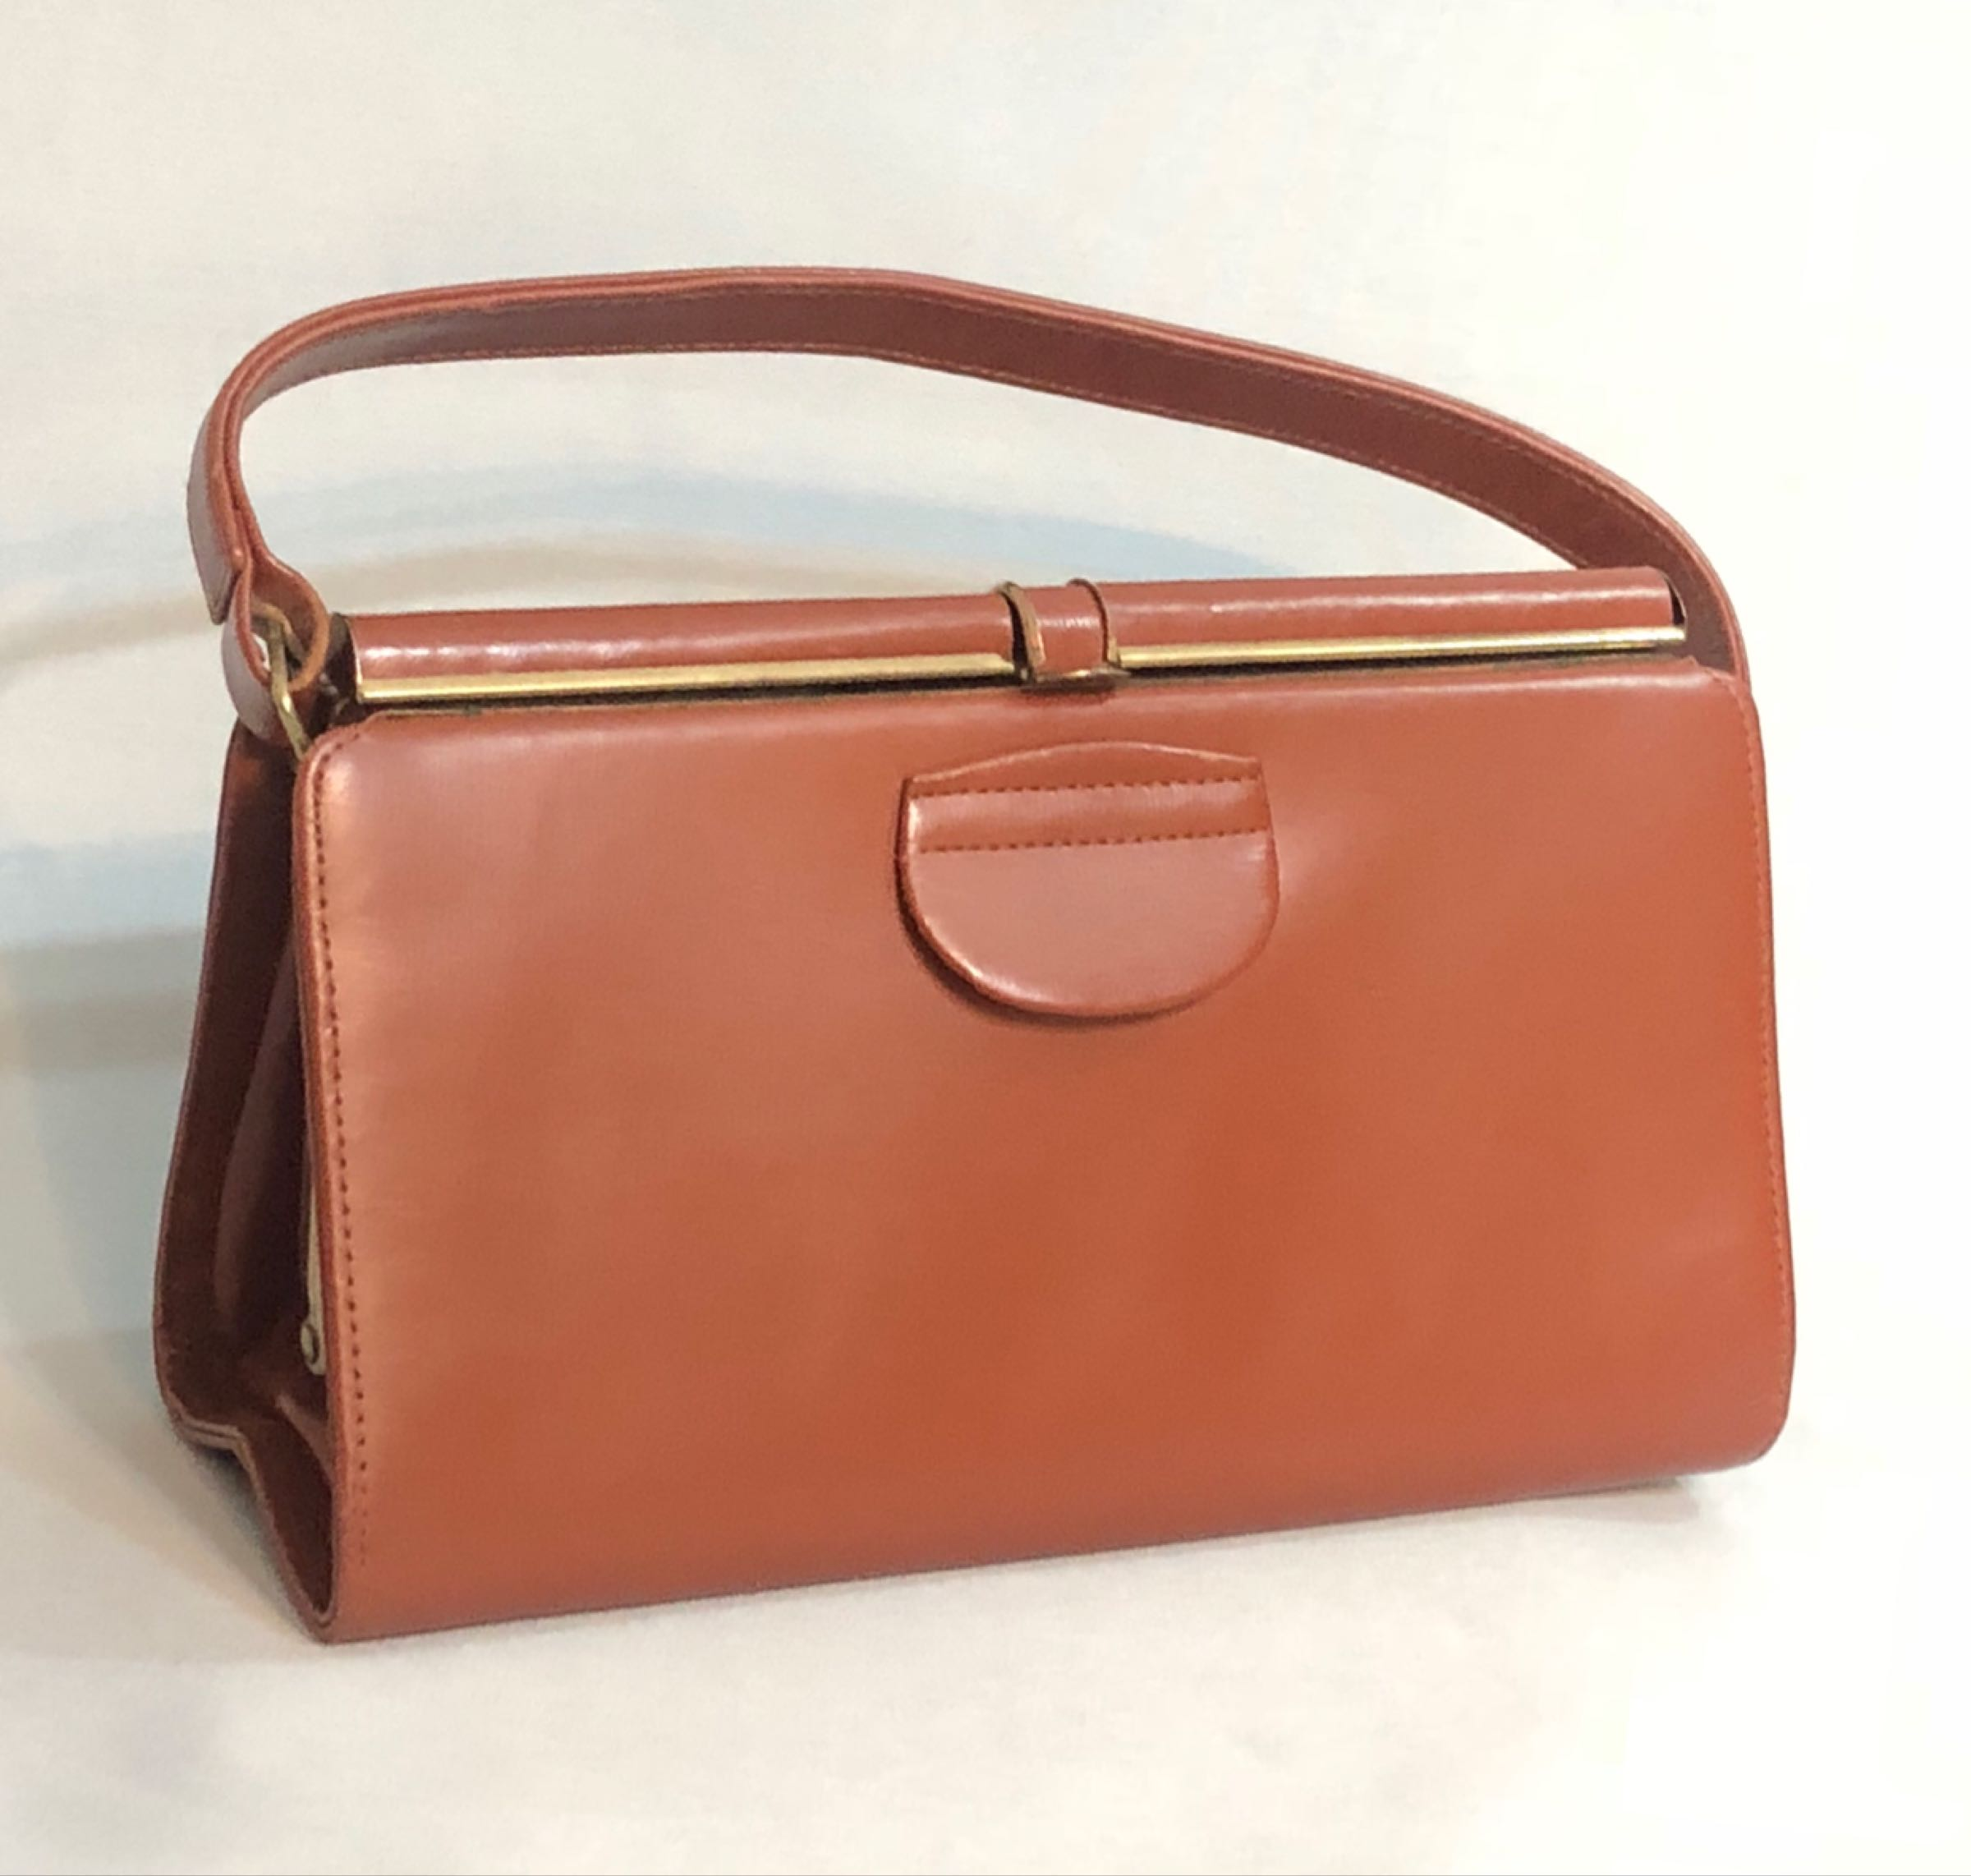 Brown leather handbag & purse